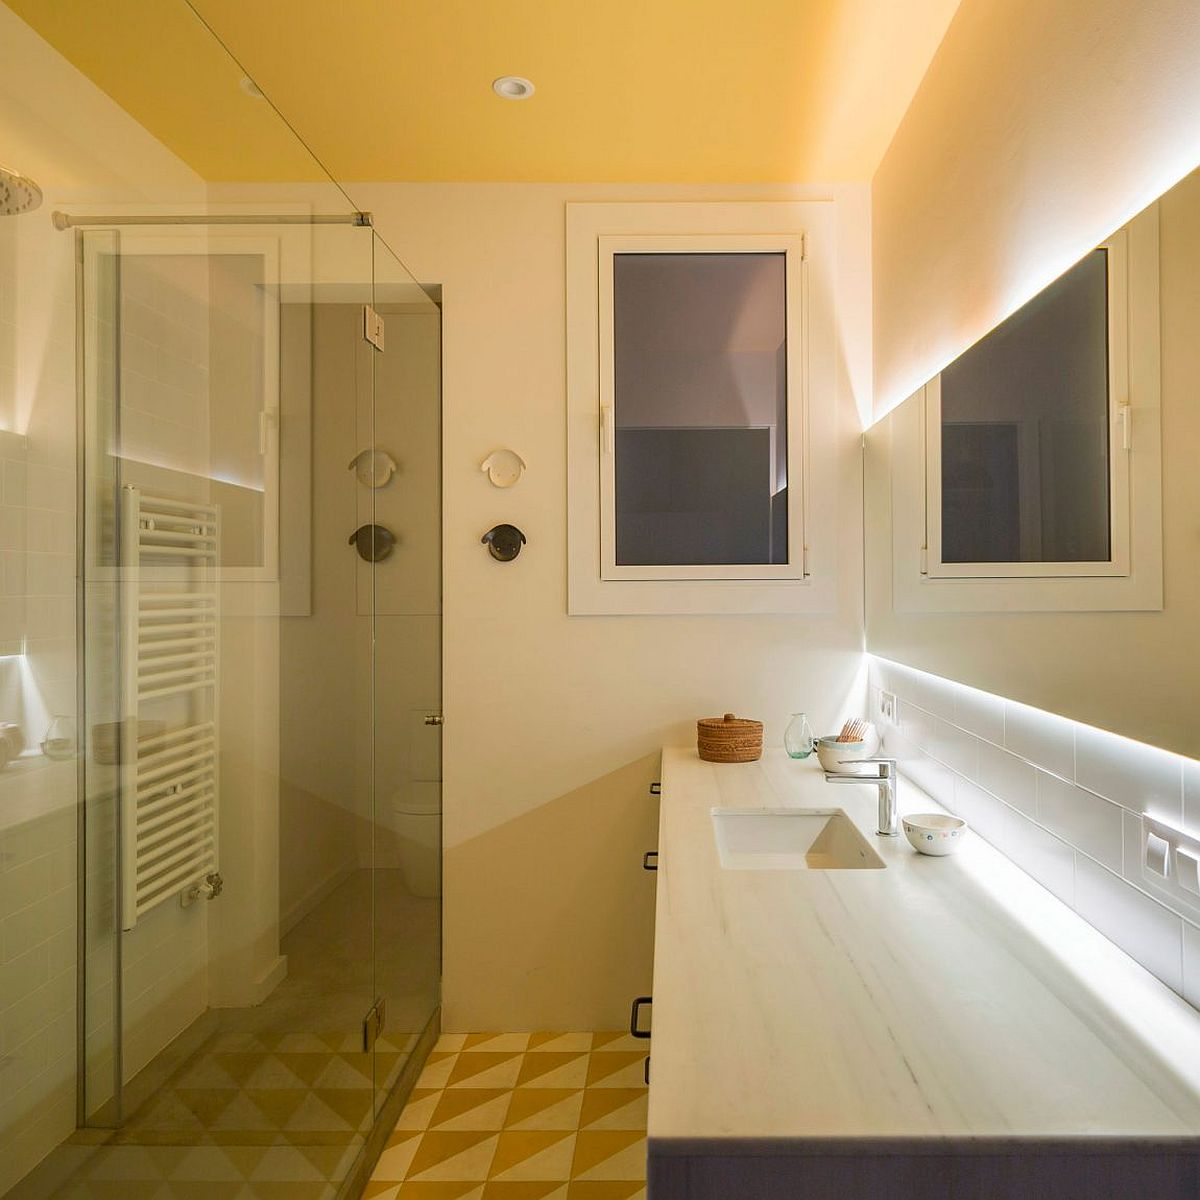 Small bathroom of the rejuvinated bathroom in a home with chamfered corners